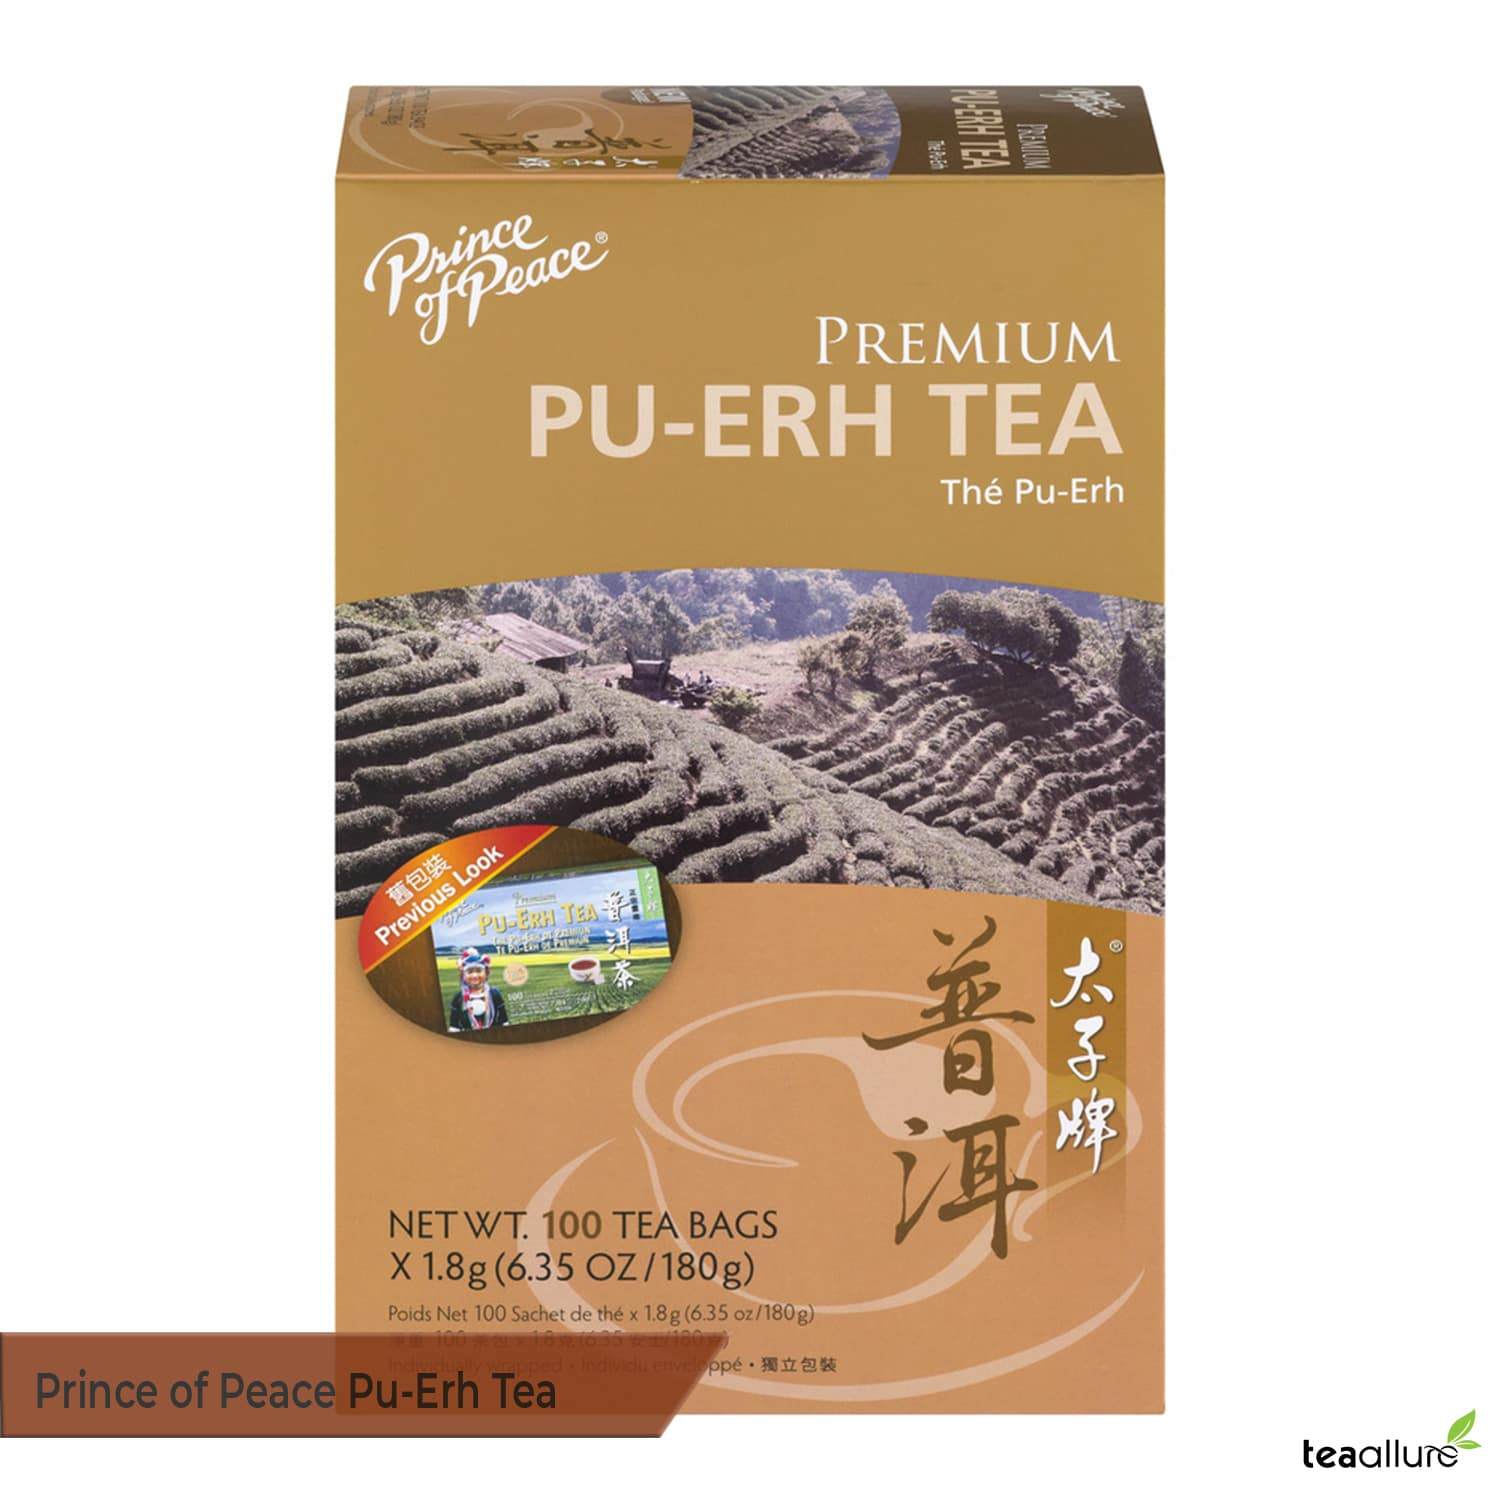 Prince of Peace Pu-erh tea